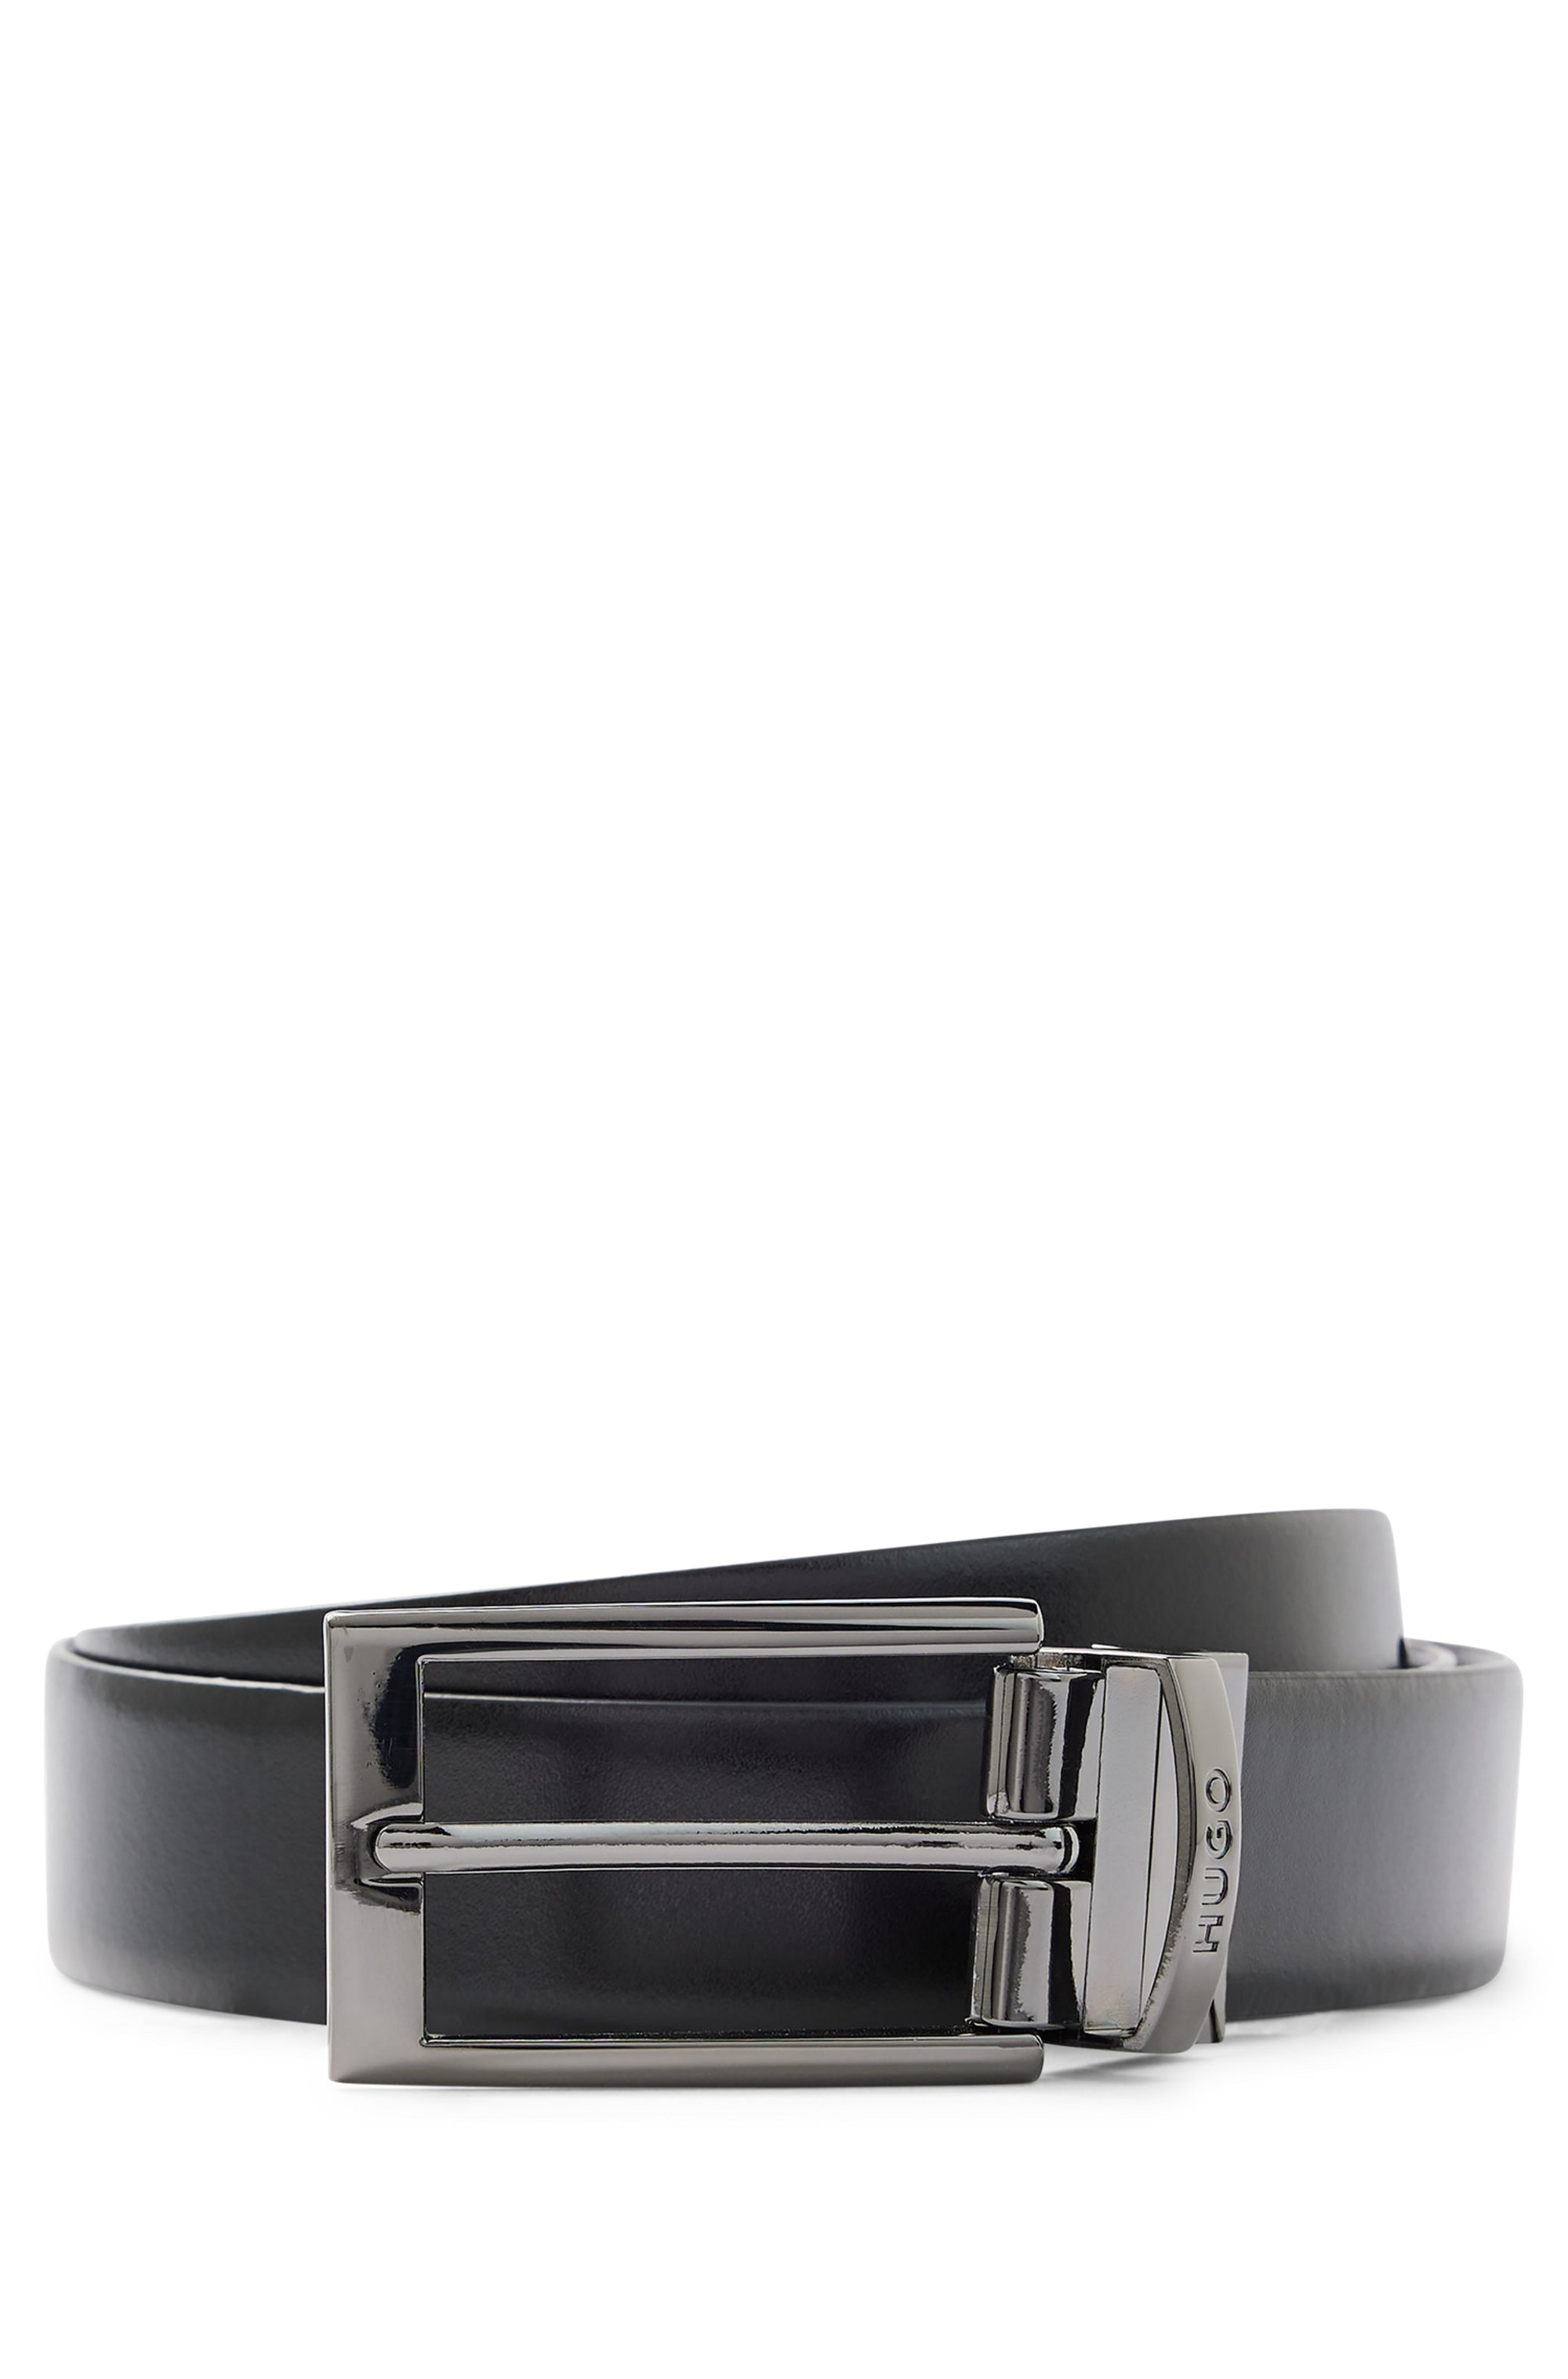 Reversible leather belt with polished gunmetal hardware, Black